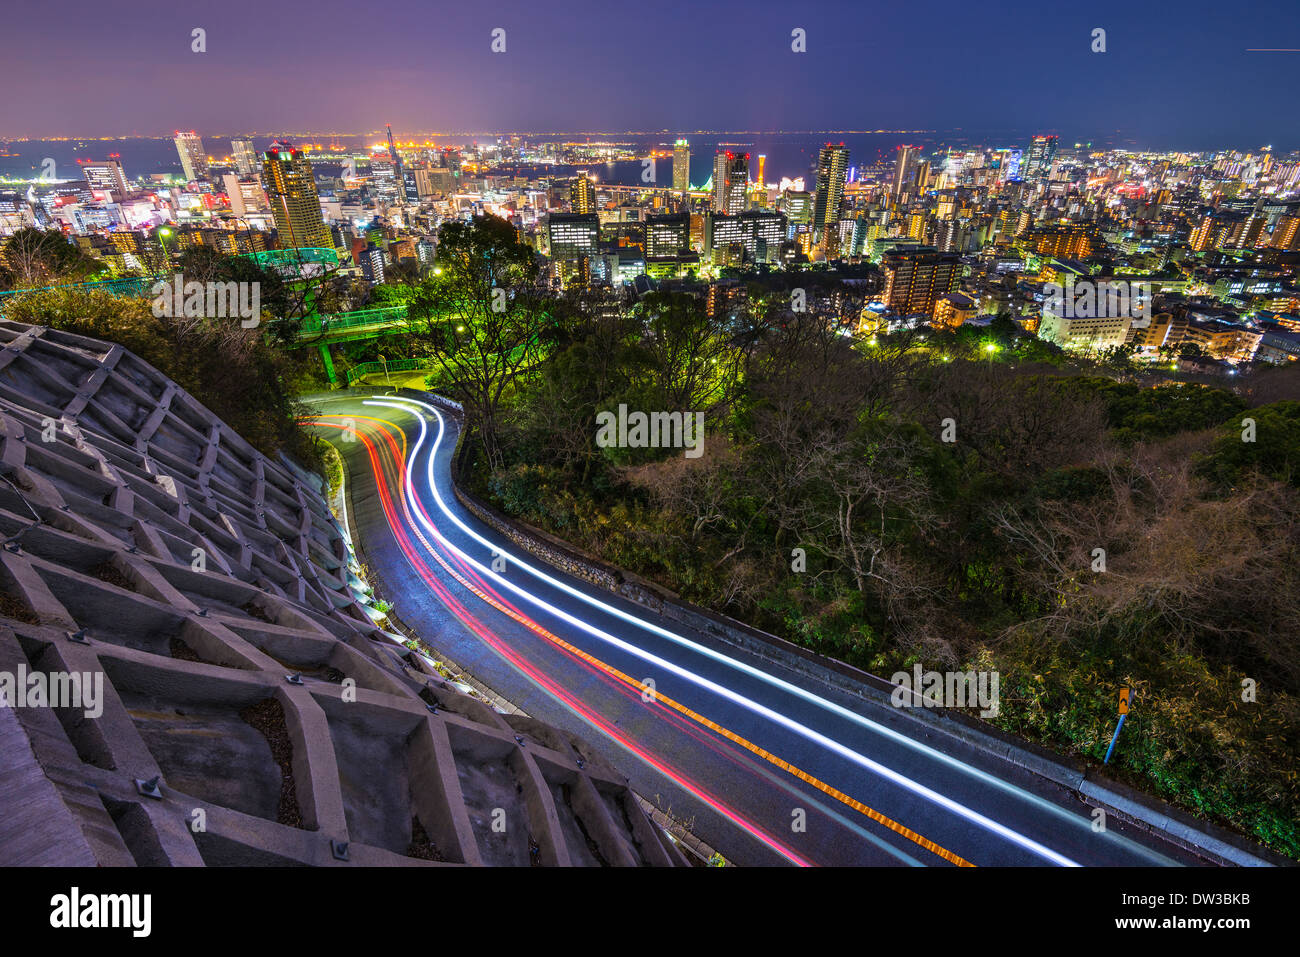 Kobe, Japan city skyline - Stock Image